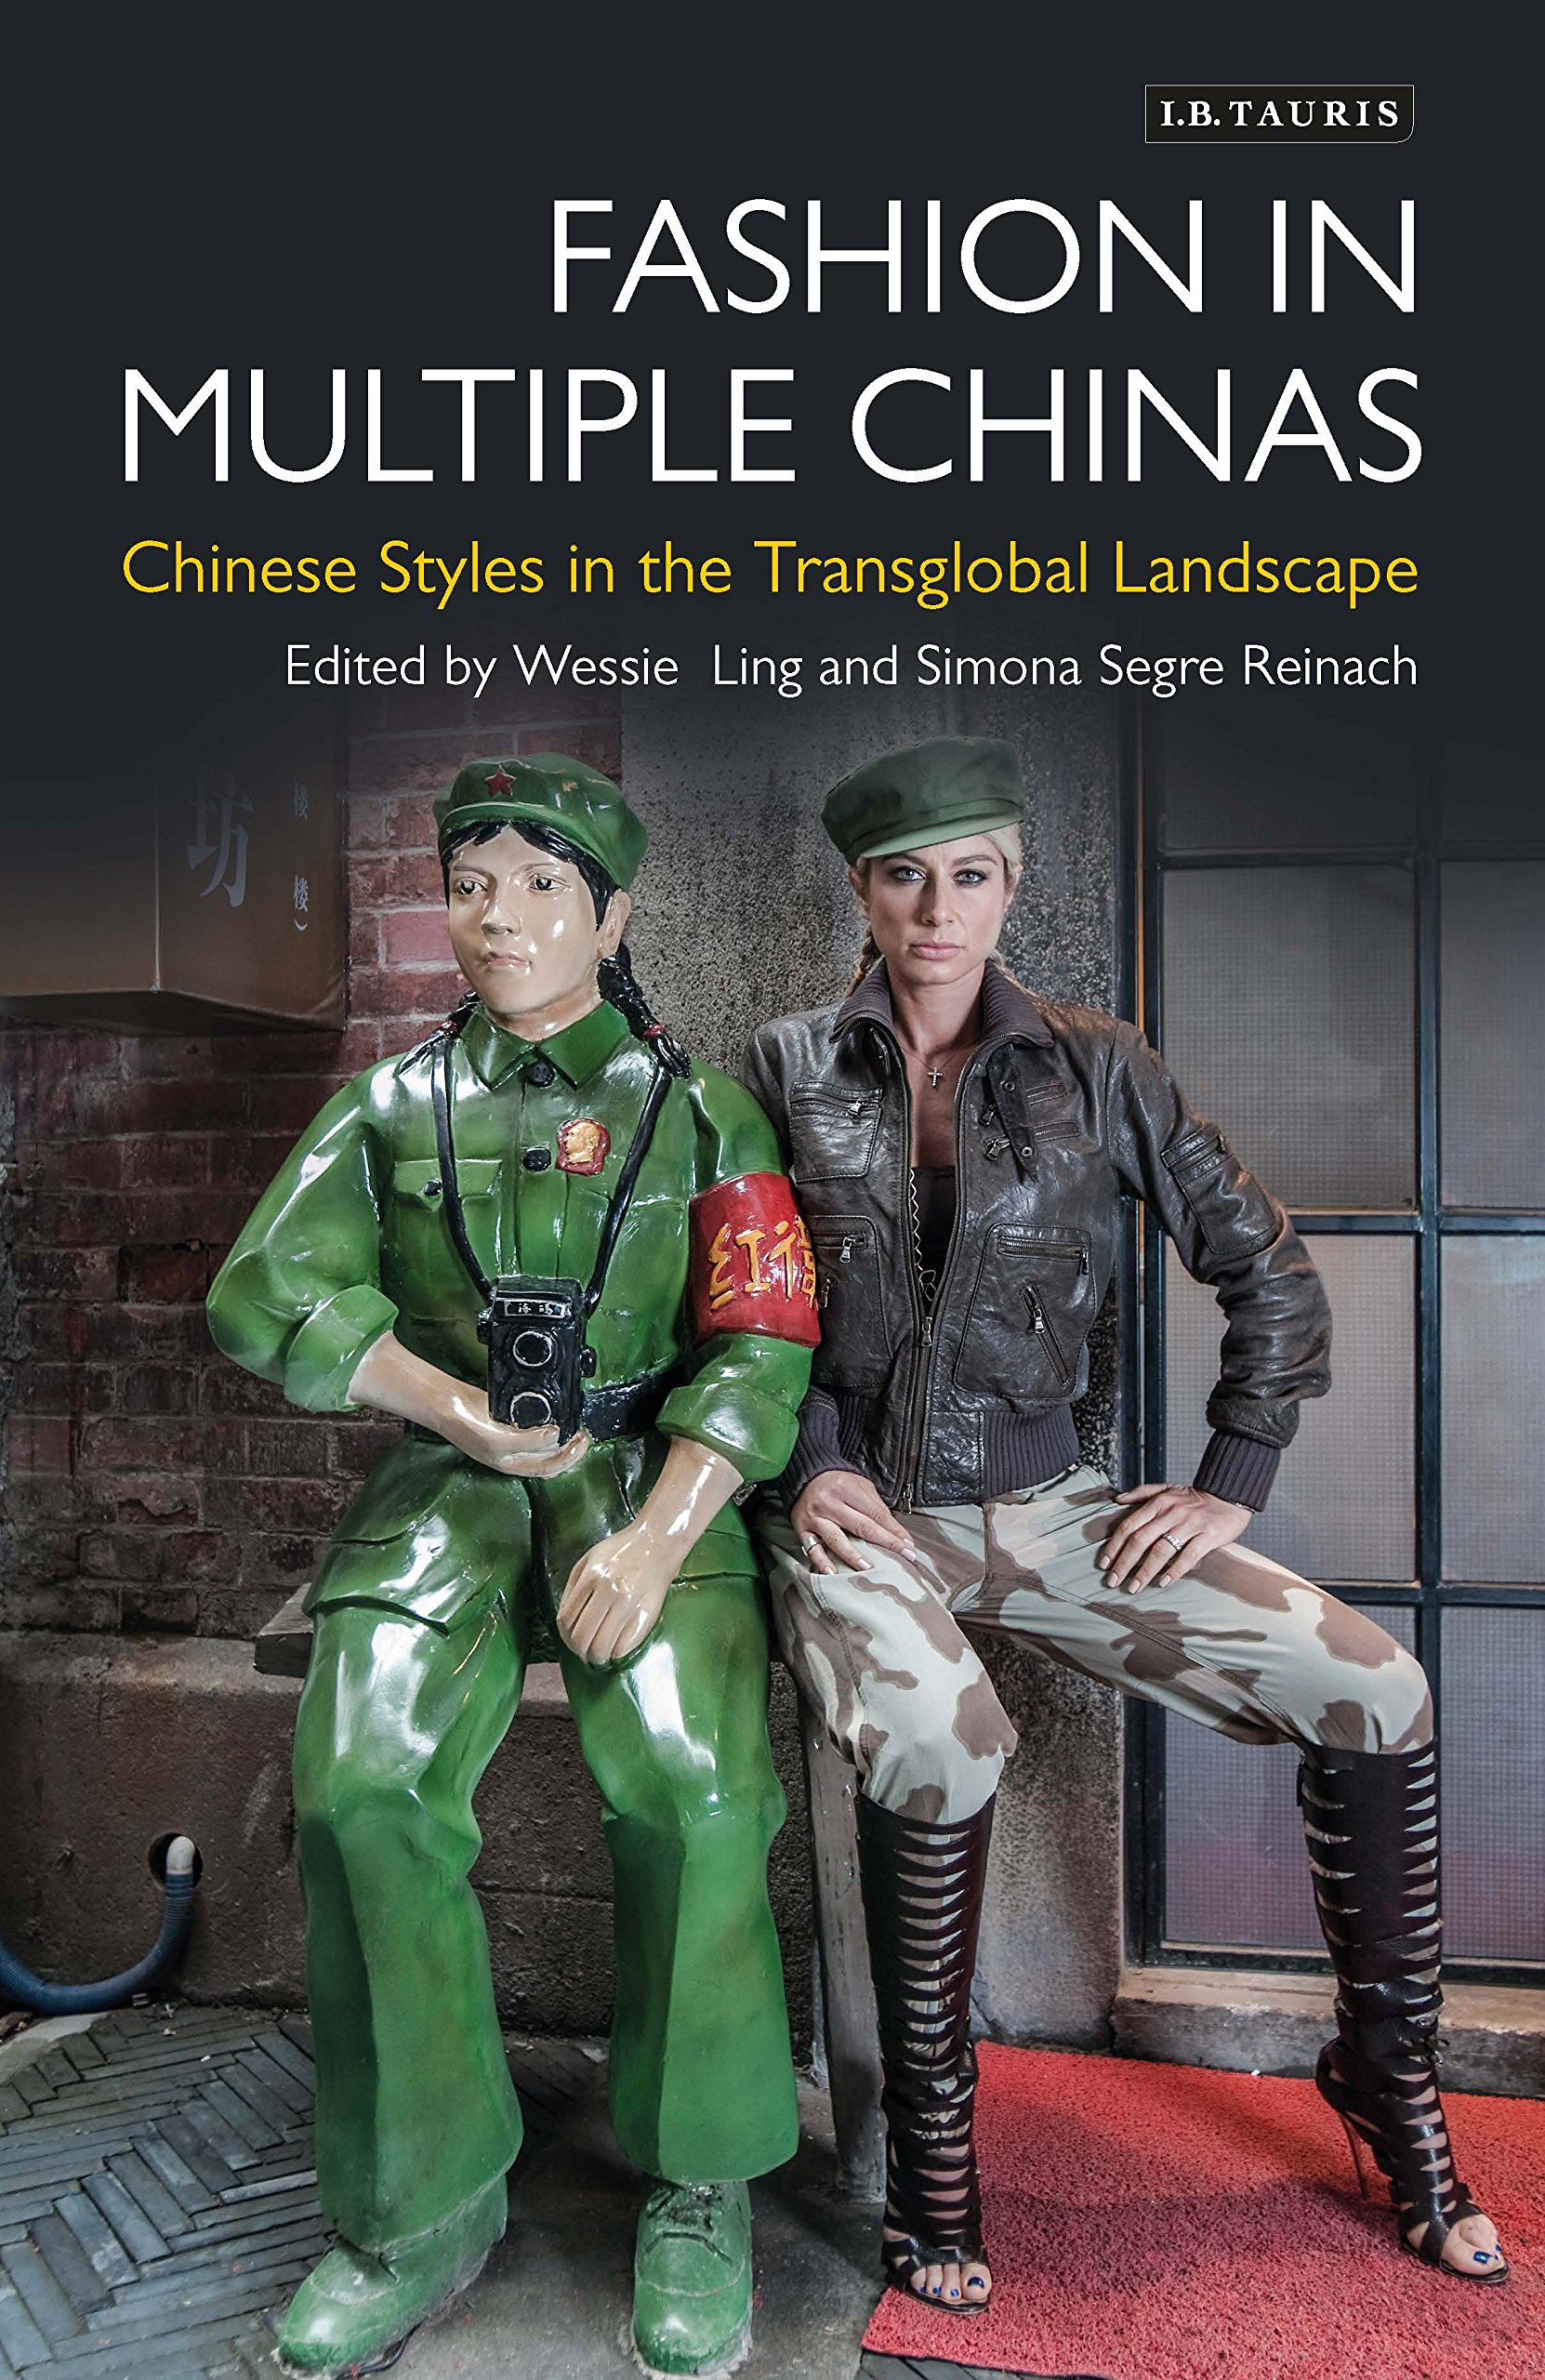 Read Online Fashion in Multiple Chinas: Chinese Styles in the Transglobal Landscape (Dress Cultures) PDF